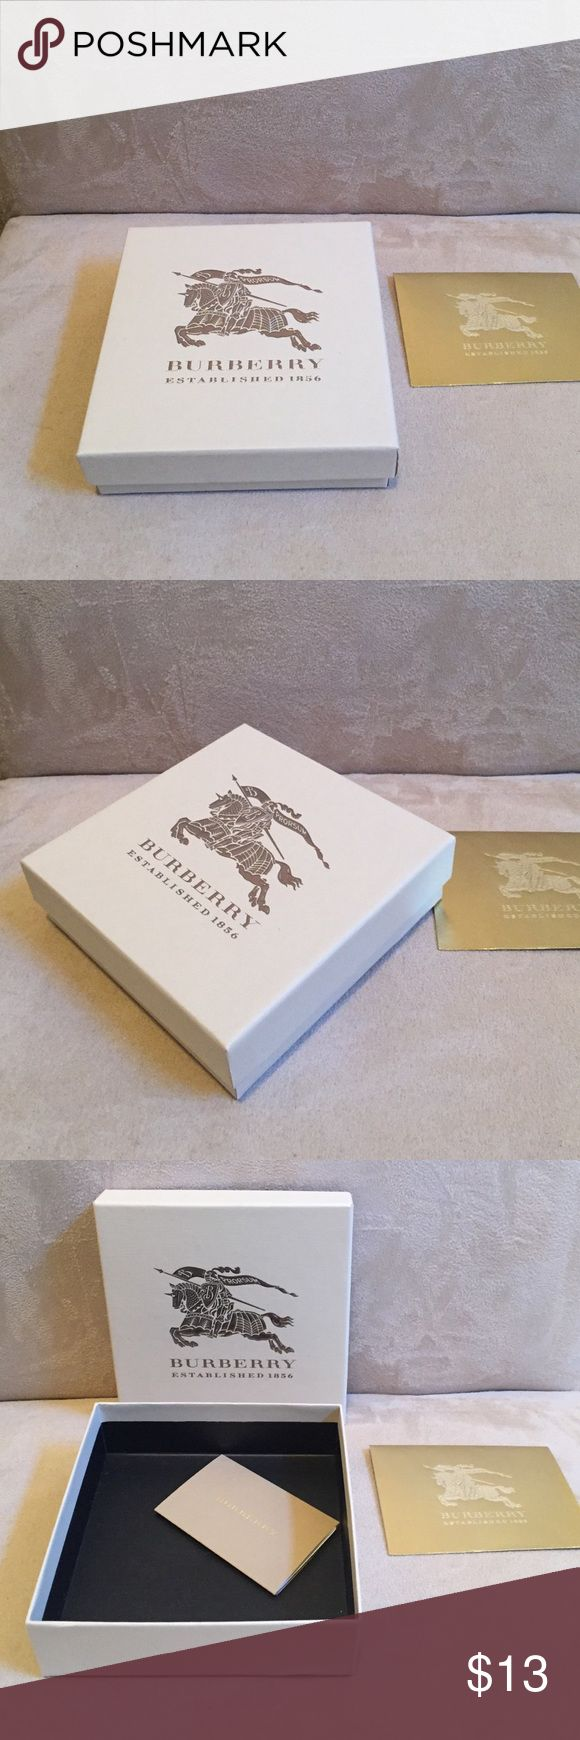 Burberry box for men wallet Burberry box for men wallet. If you would like a shopping bag and other accessories for gift wrapping you can find all in separate listings. Bundle and save money. Burberry Other